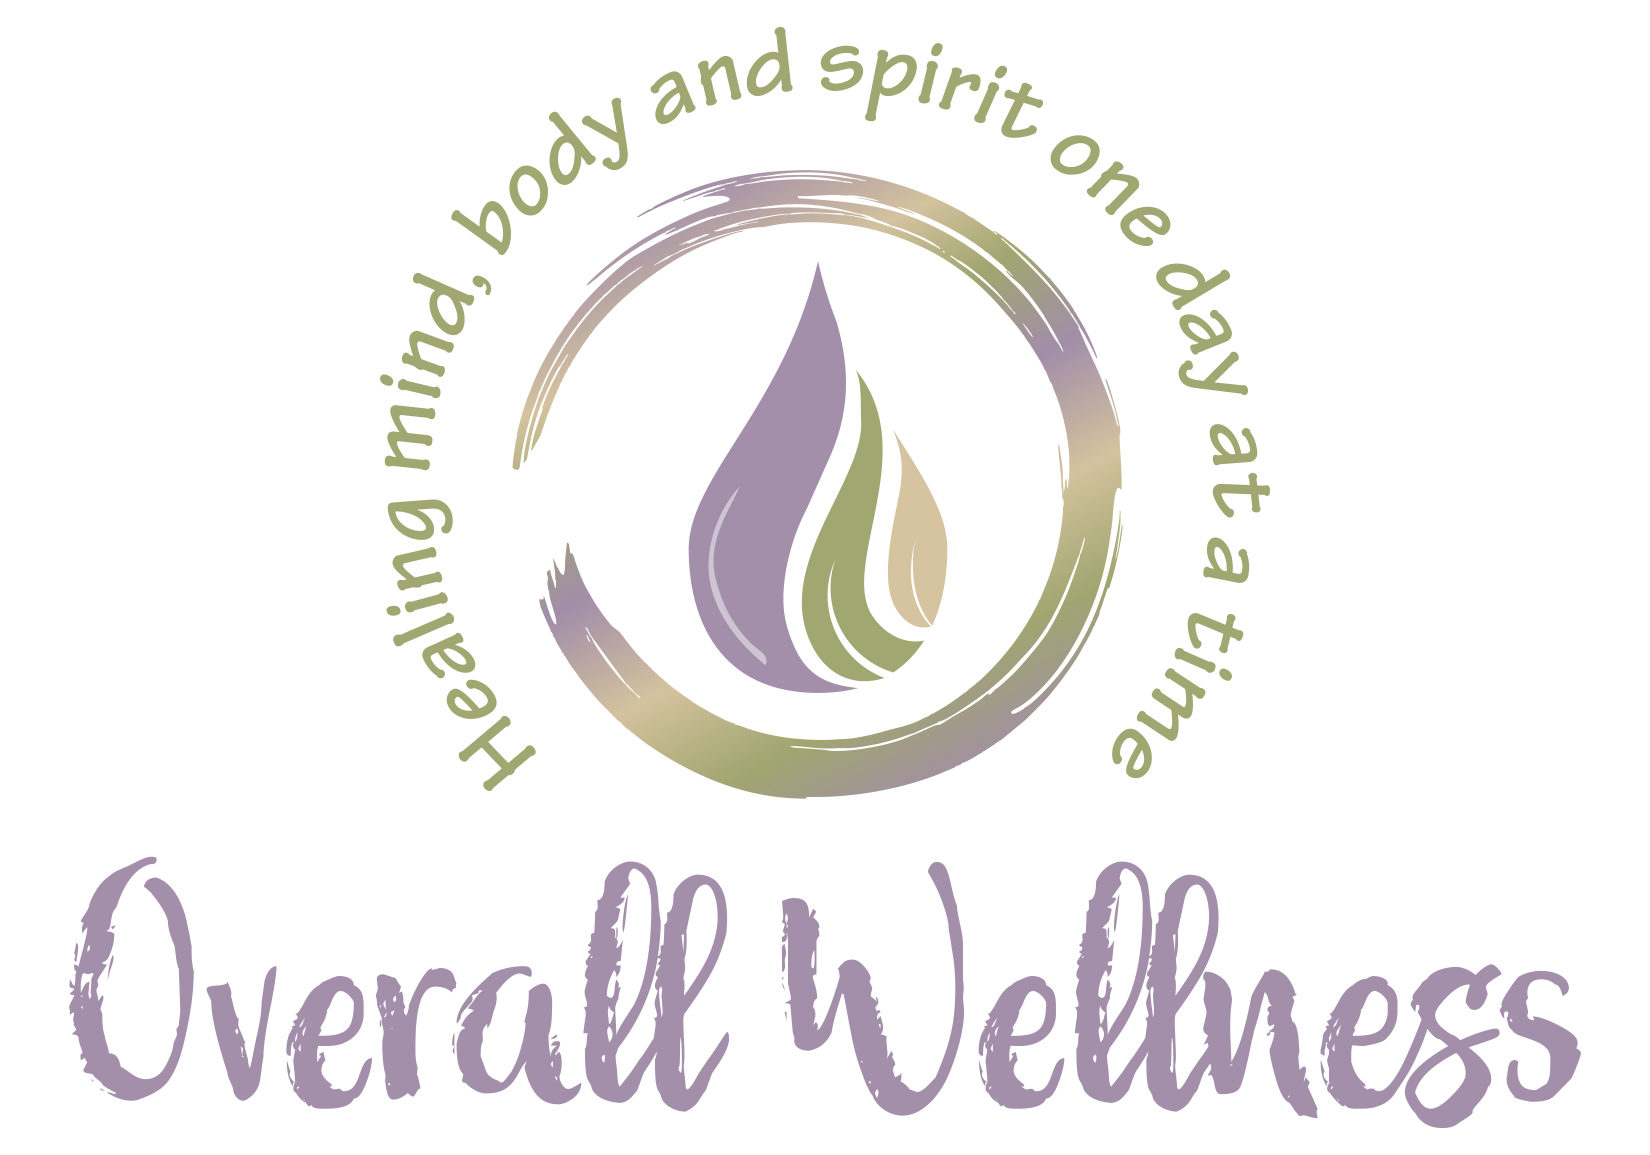 About Overall Wellness